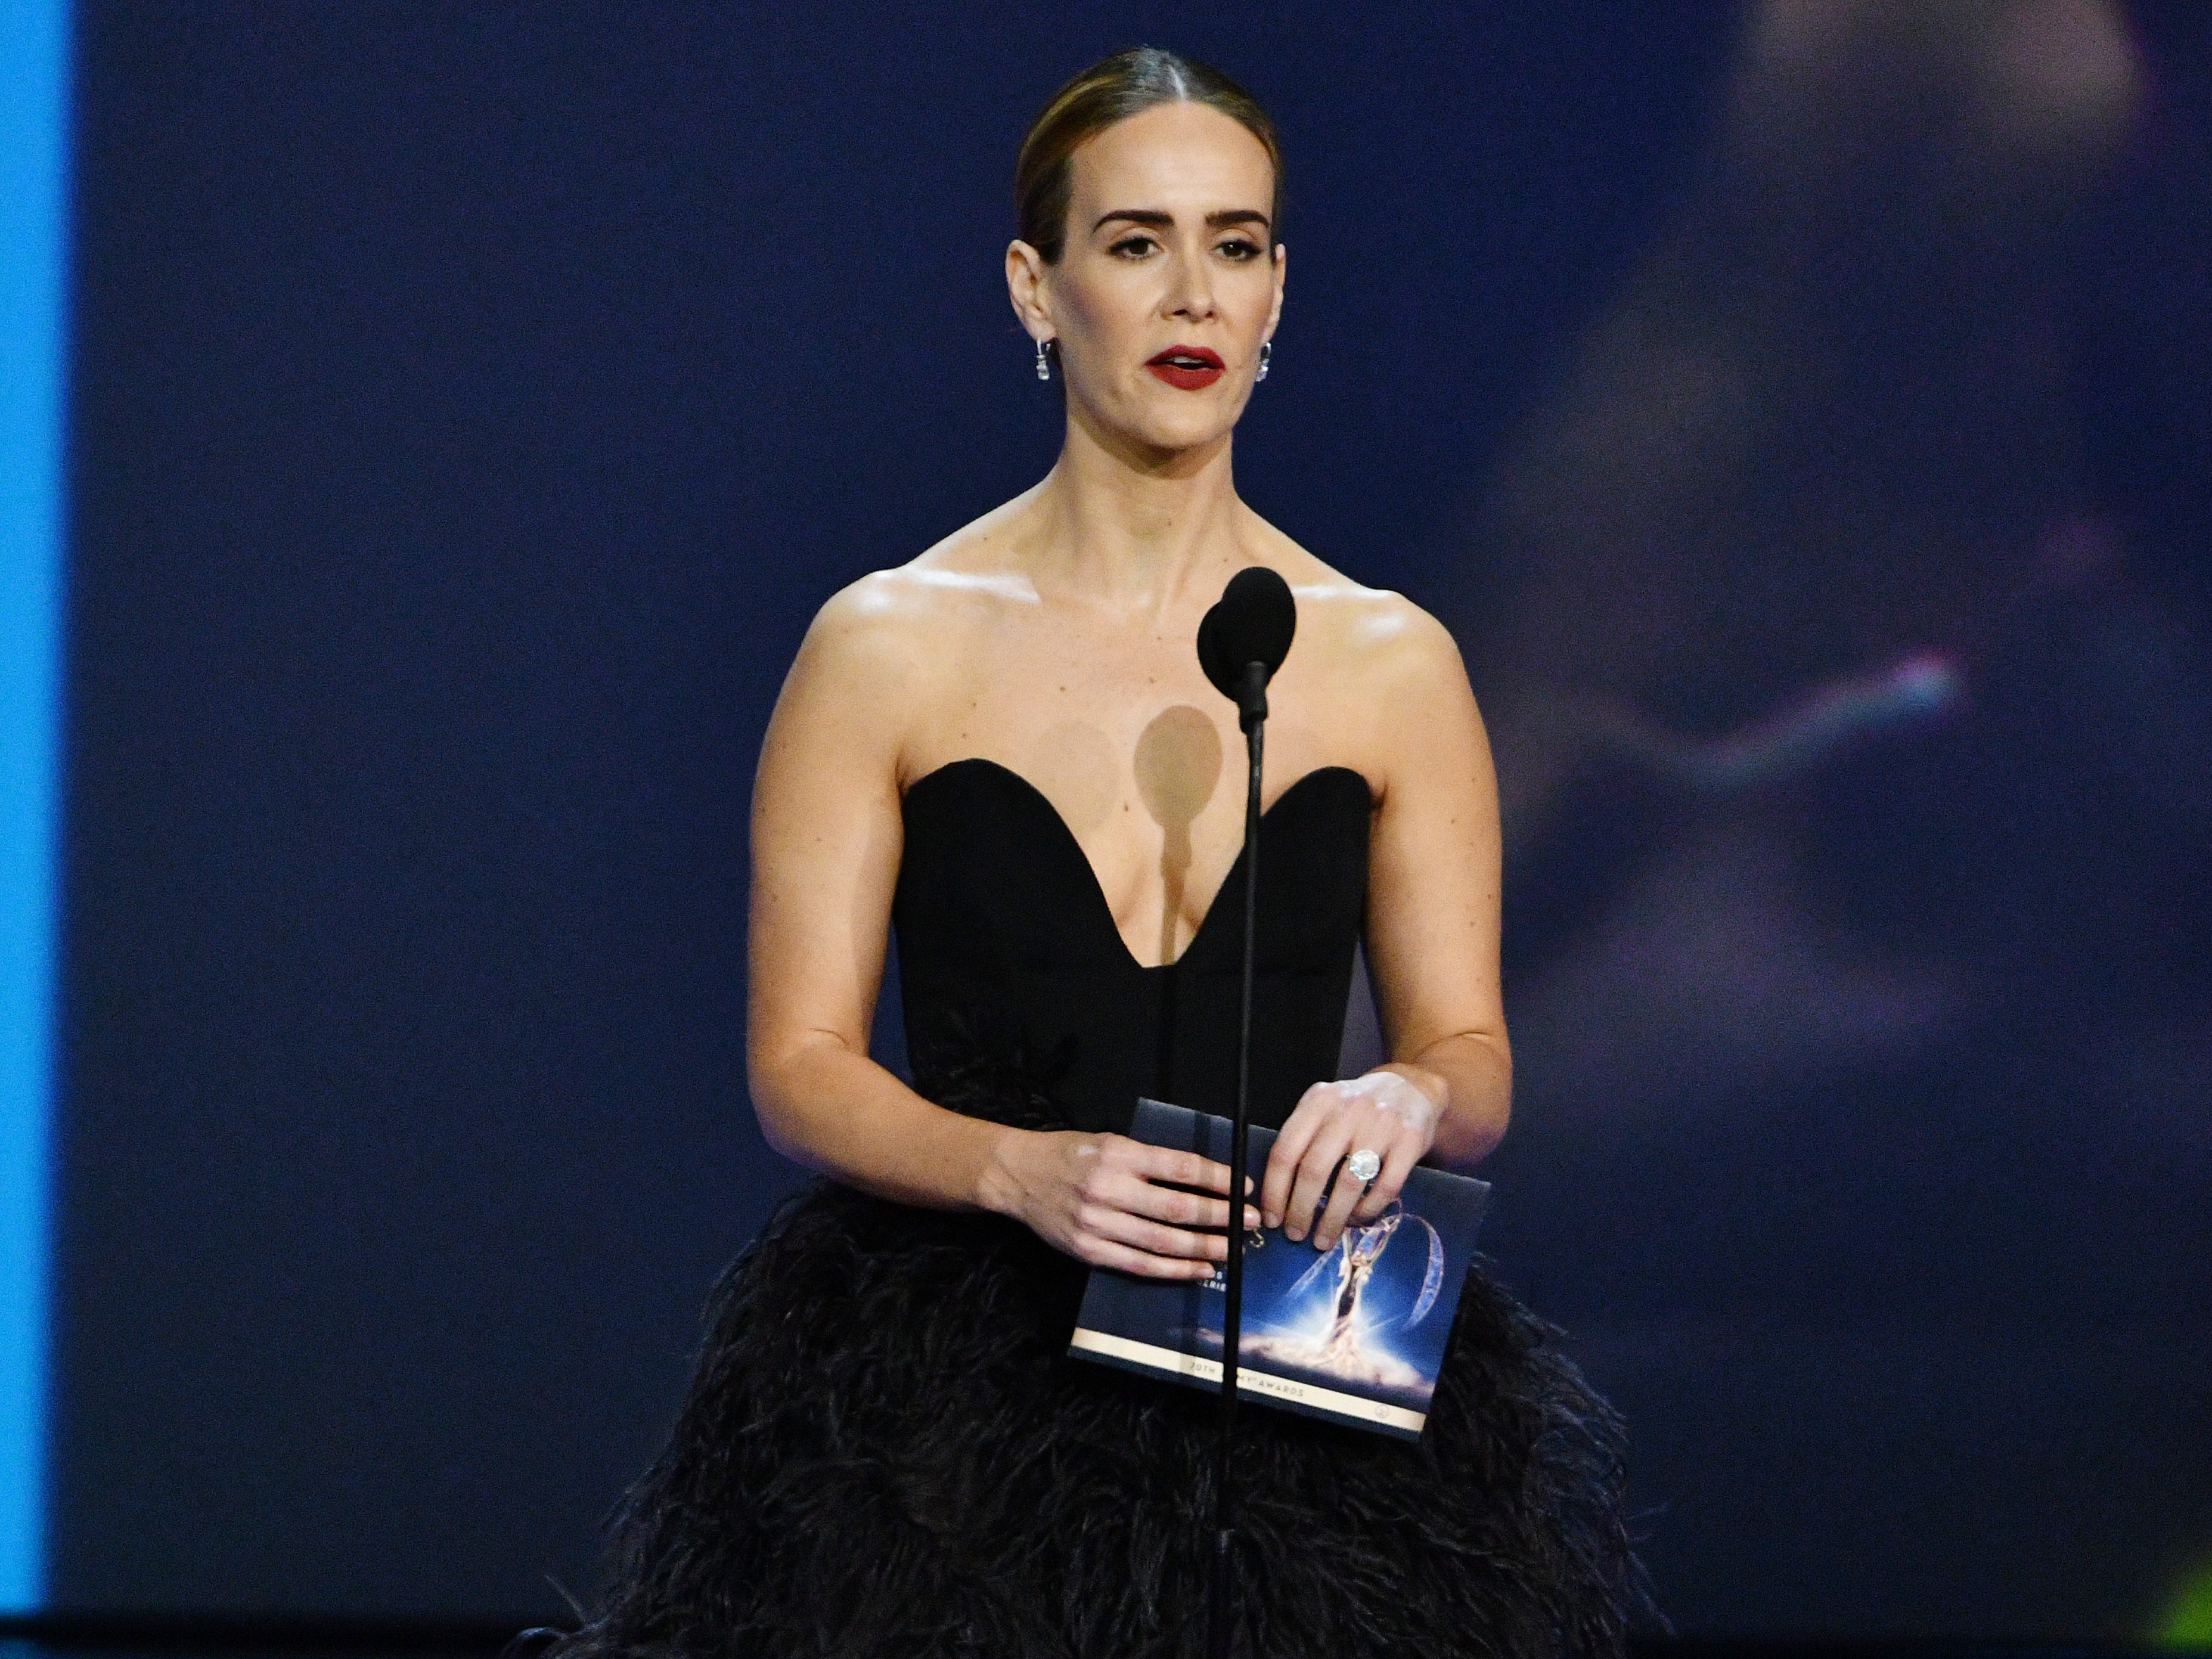 Sarah Paulson presents the award for lead actress in a drama series.